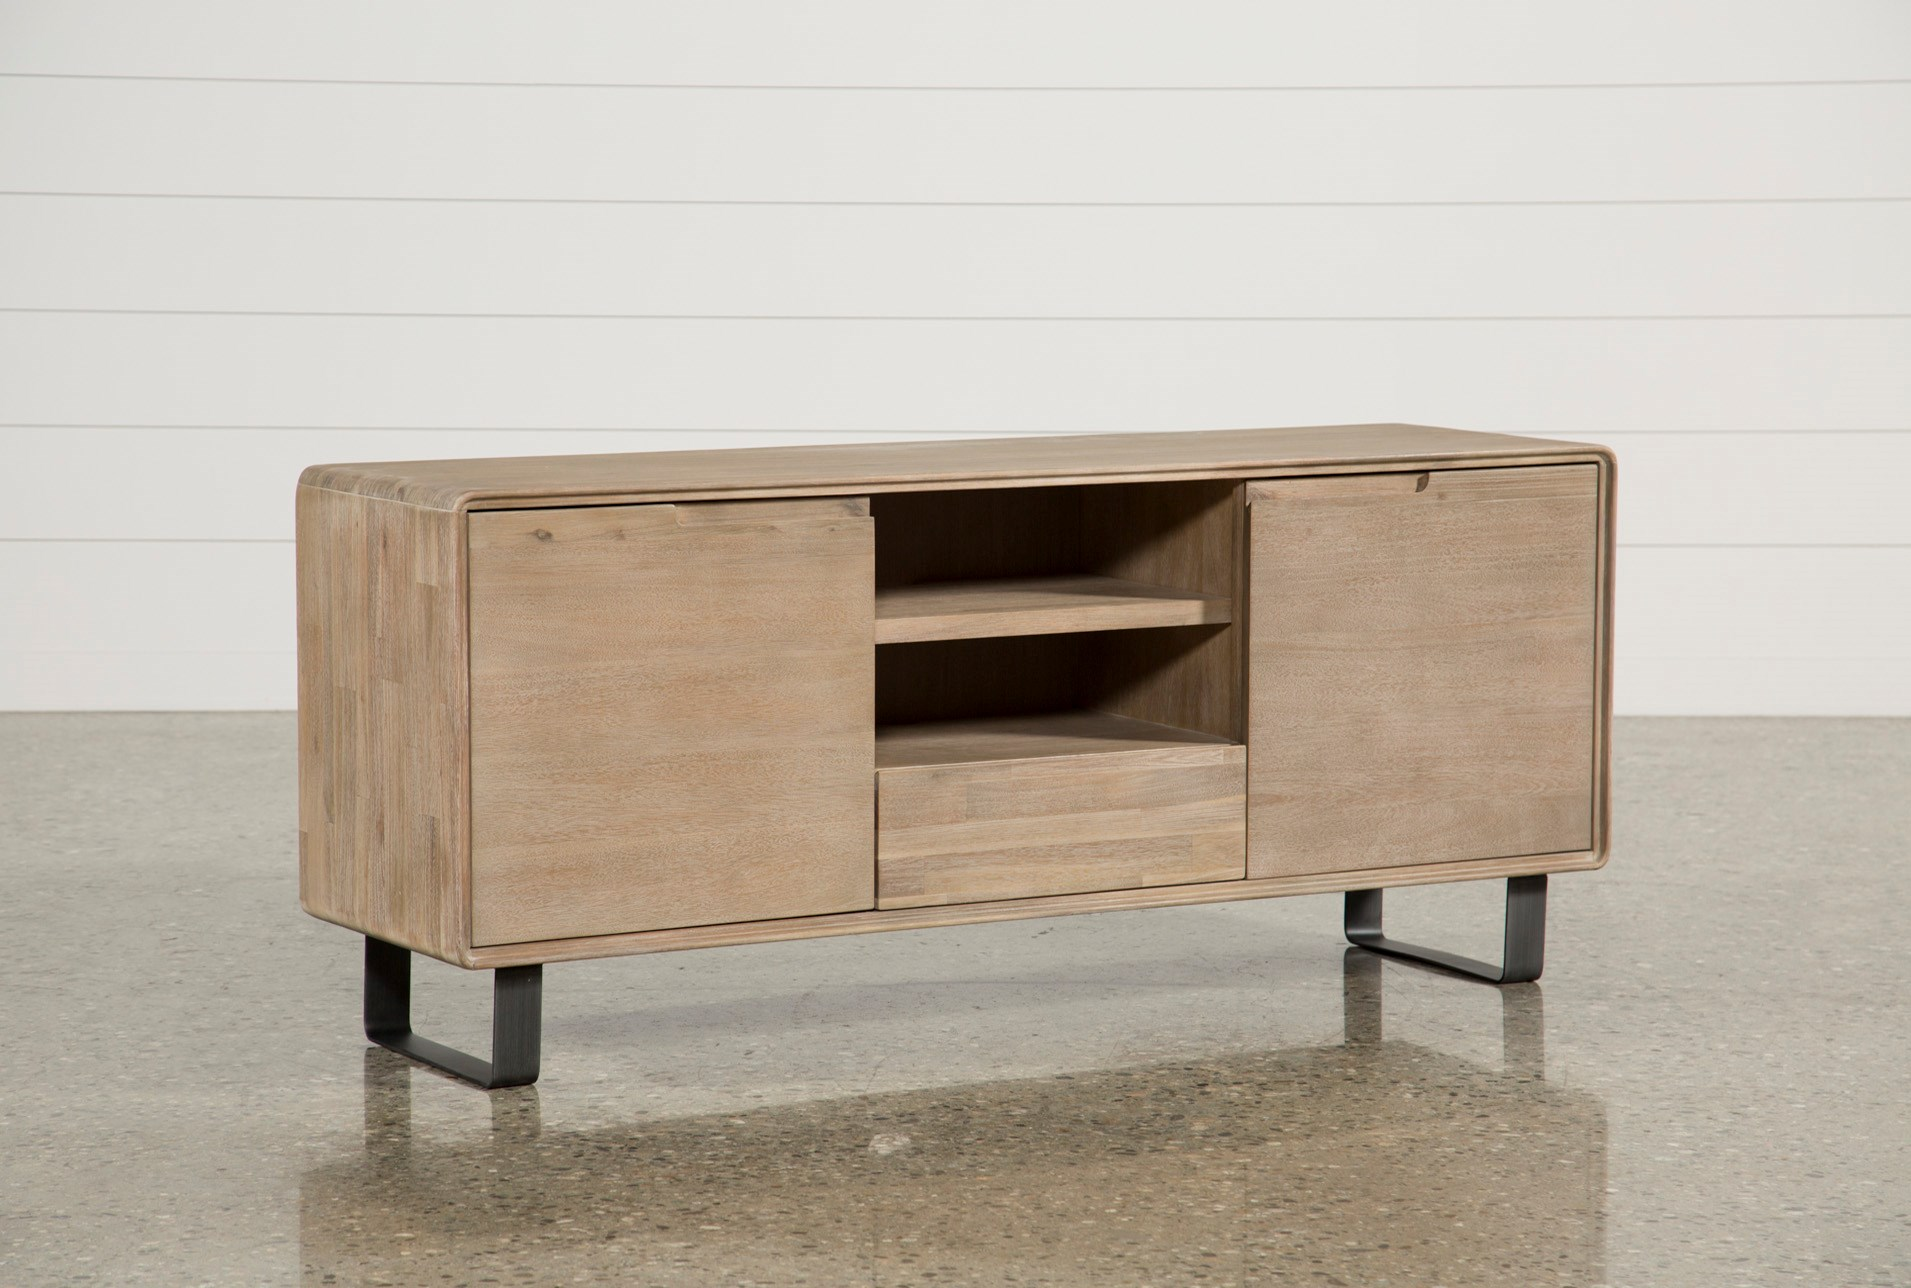 Forma 65 Inch Tv Stand Qty 1 Has Been Successfully Added To Your Cart